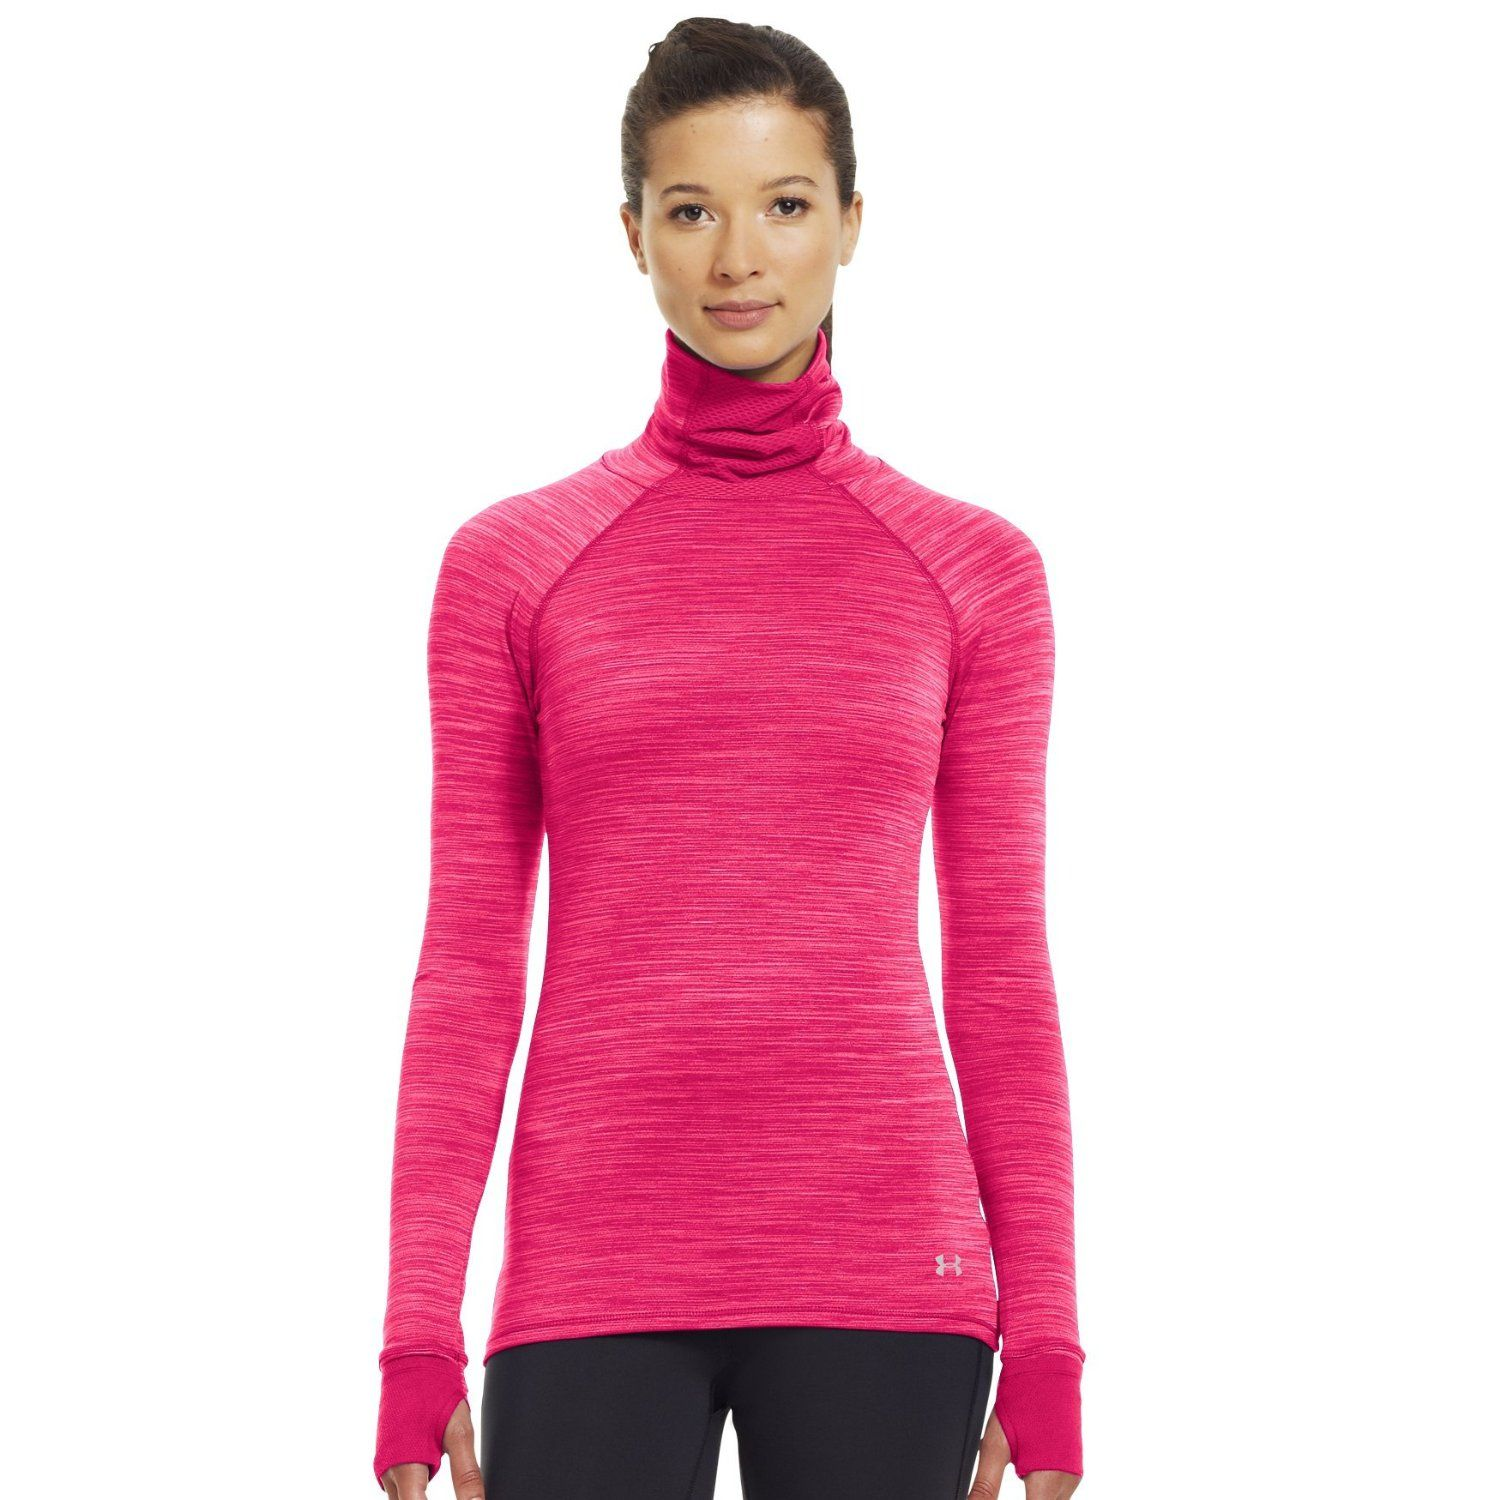 f5ca5ef793b8a Amazon.com: Under Armour Women's Printed UA Fly-By Turtleneck ...